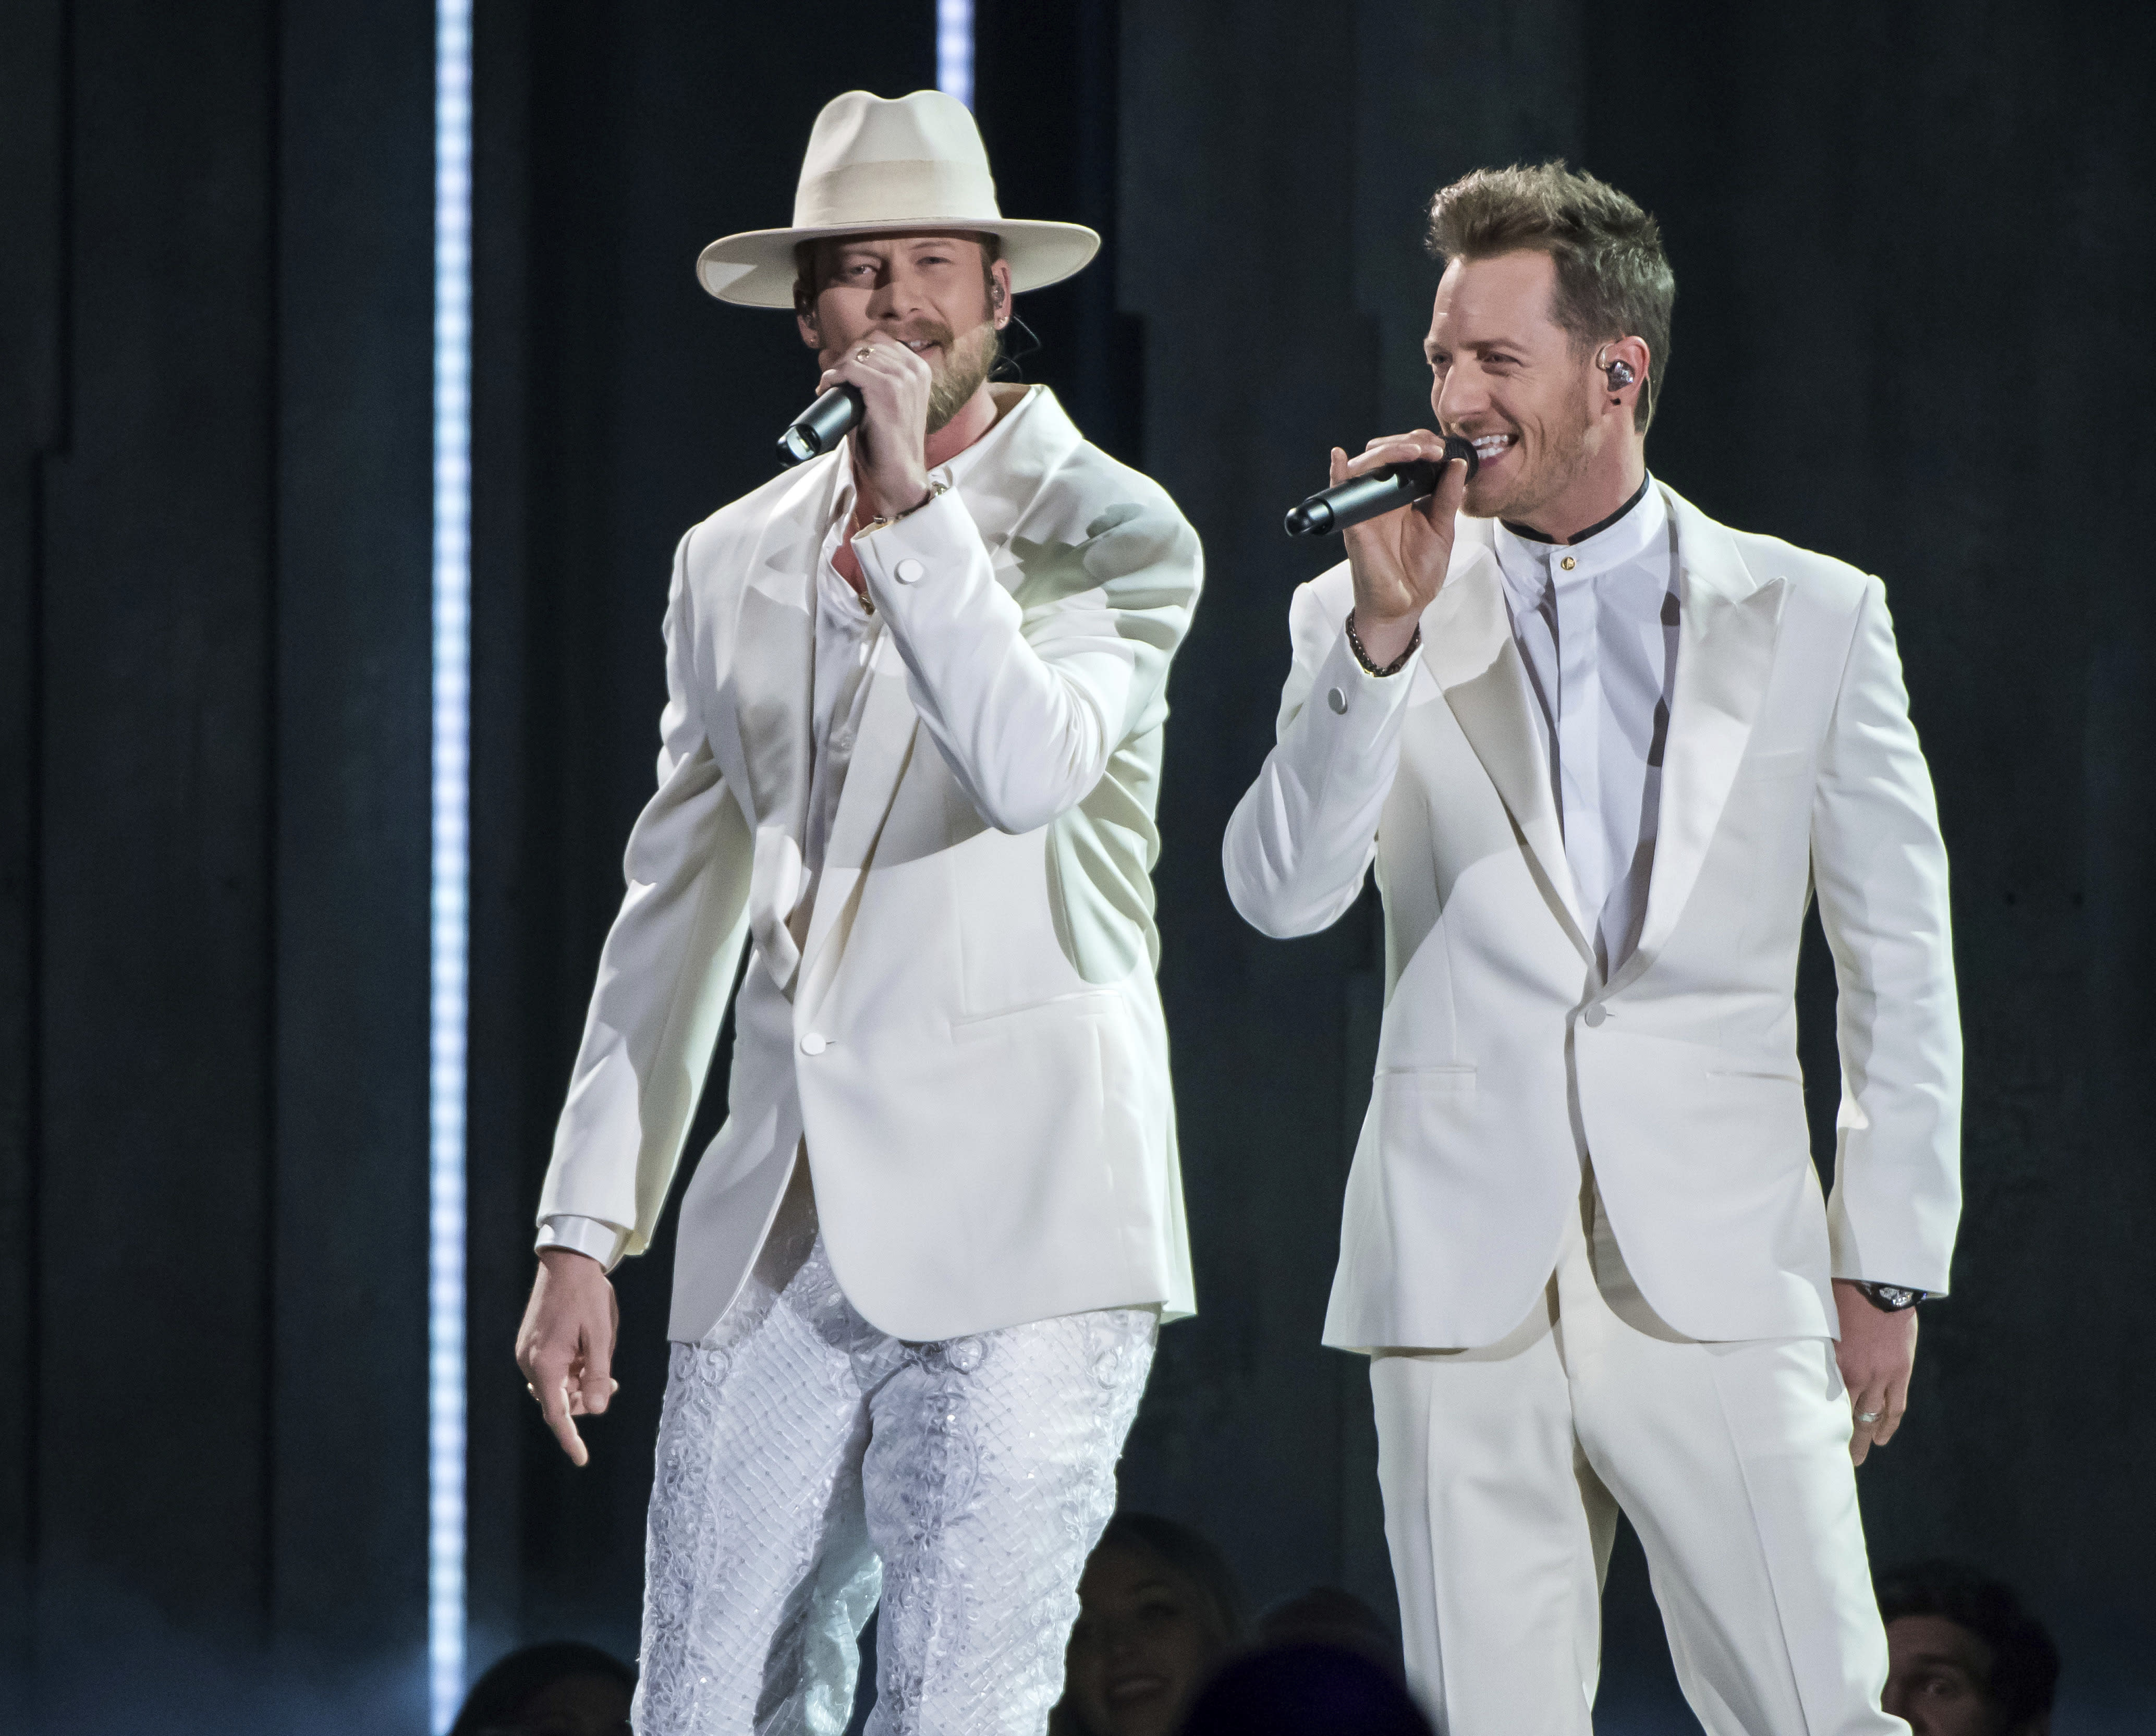 Positive COVID-19 test sidelines FGL's Tyler Hubbard at CMAs